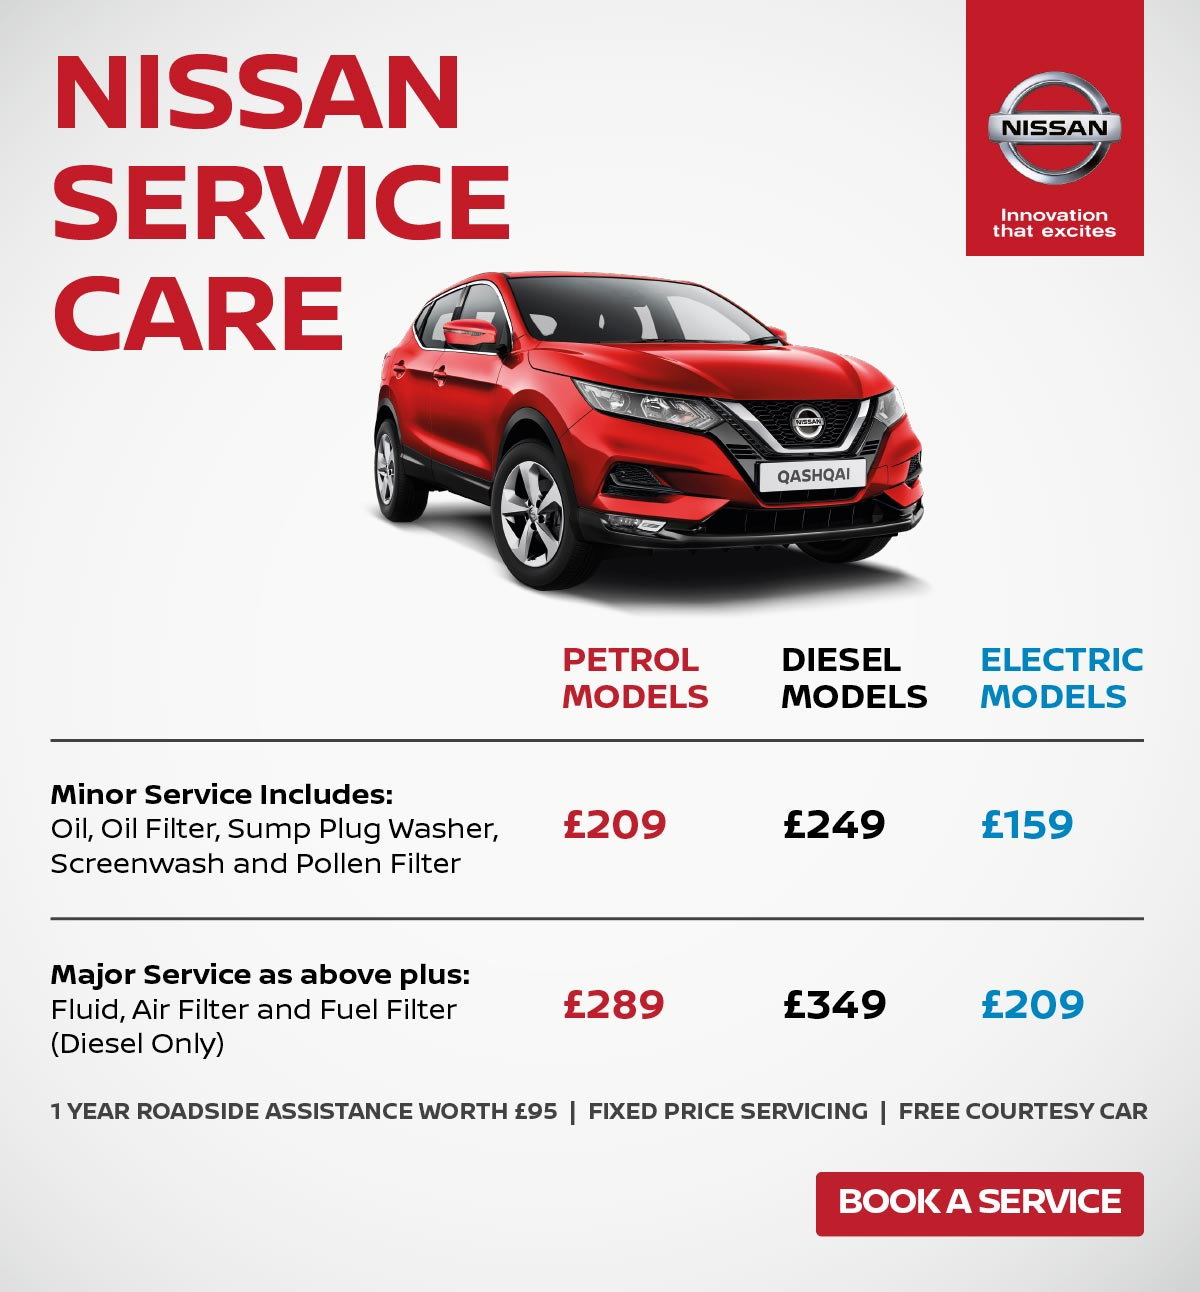 Nissan Fixed Price Servicing and Repair 071019